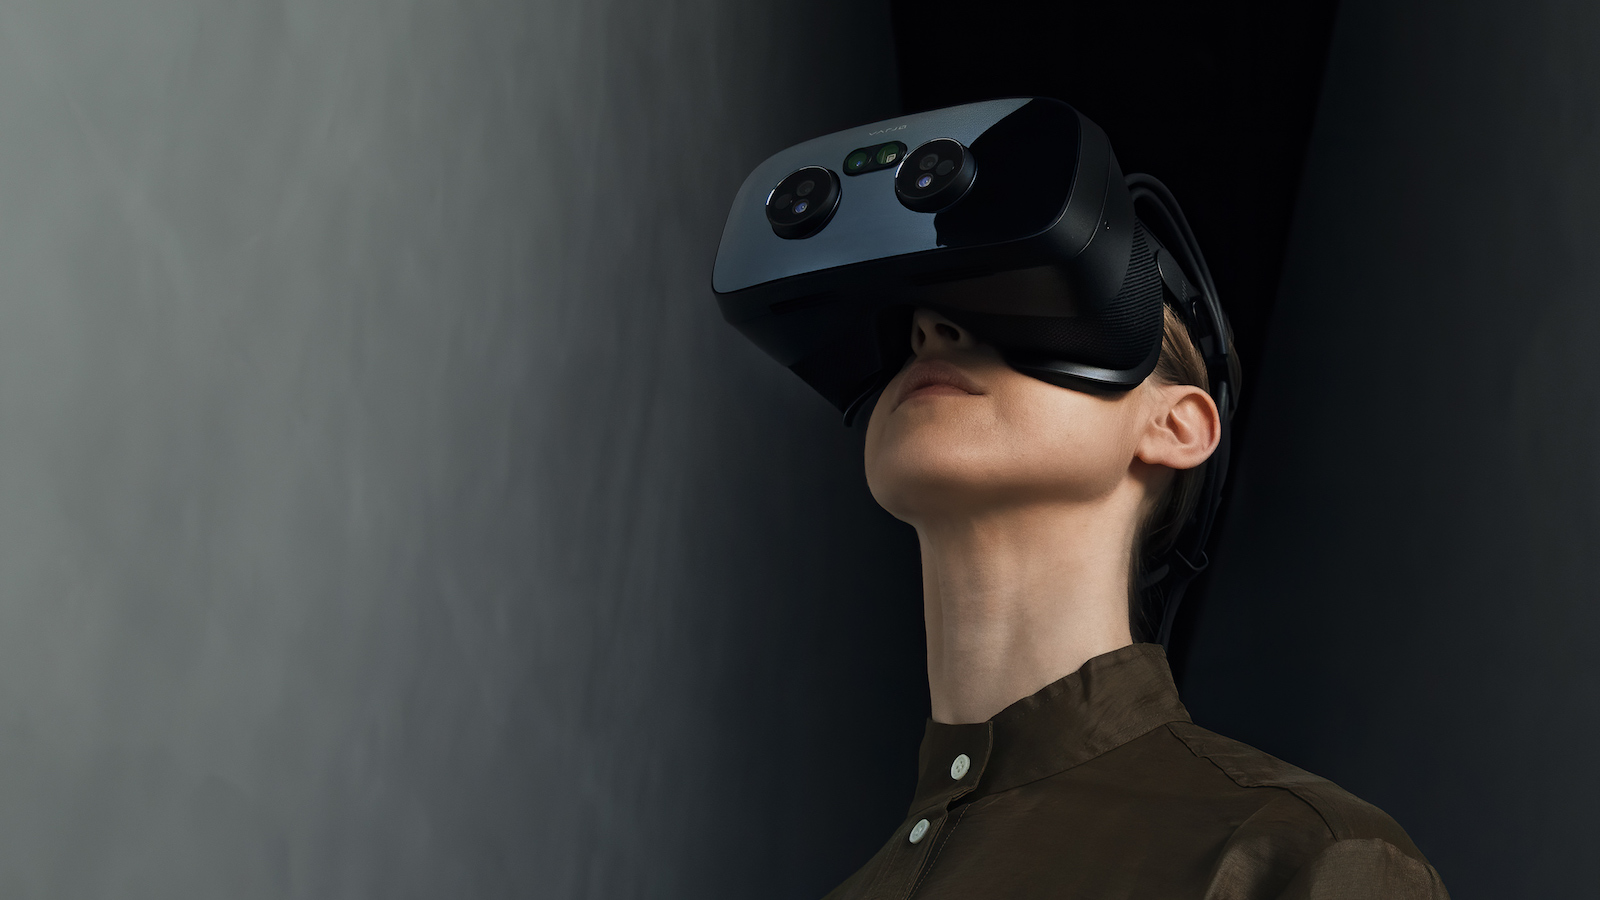 Varjo VR-3 virtual true-to-life headset features a 200 Hz integrated eye tracker